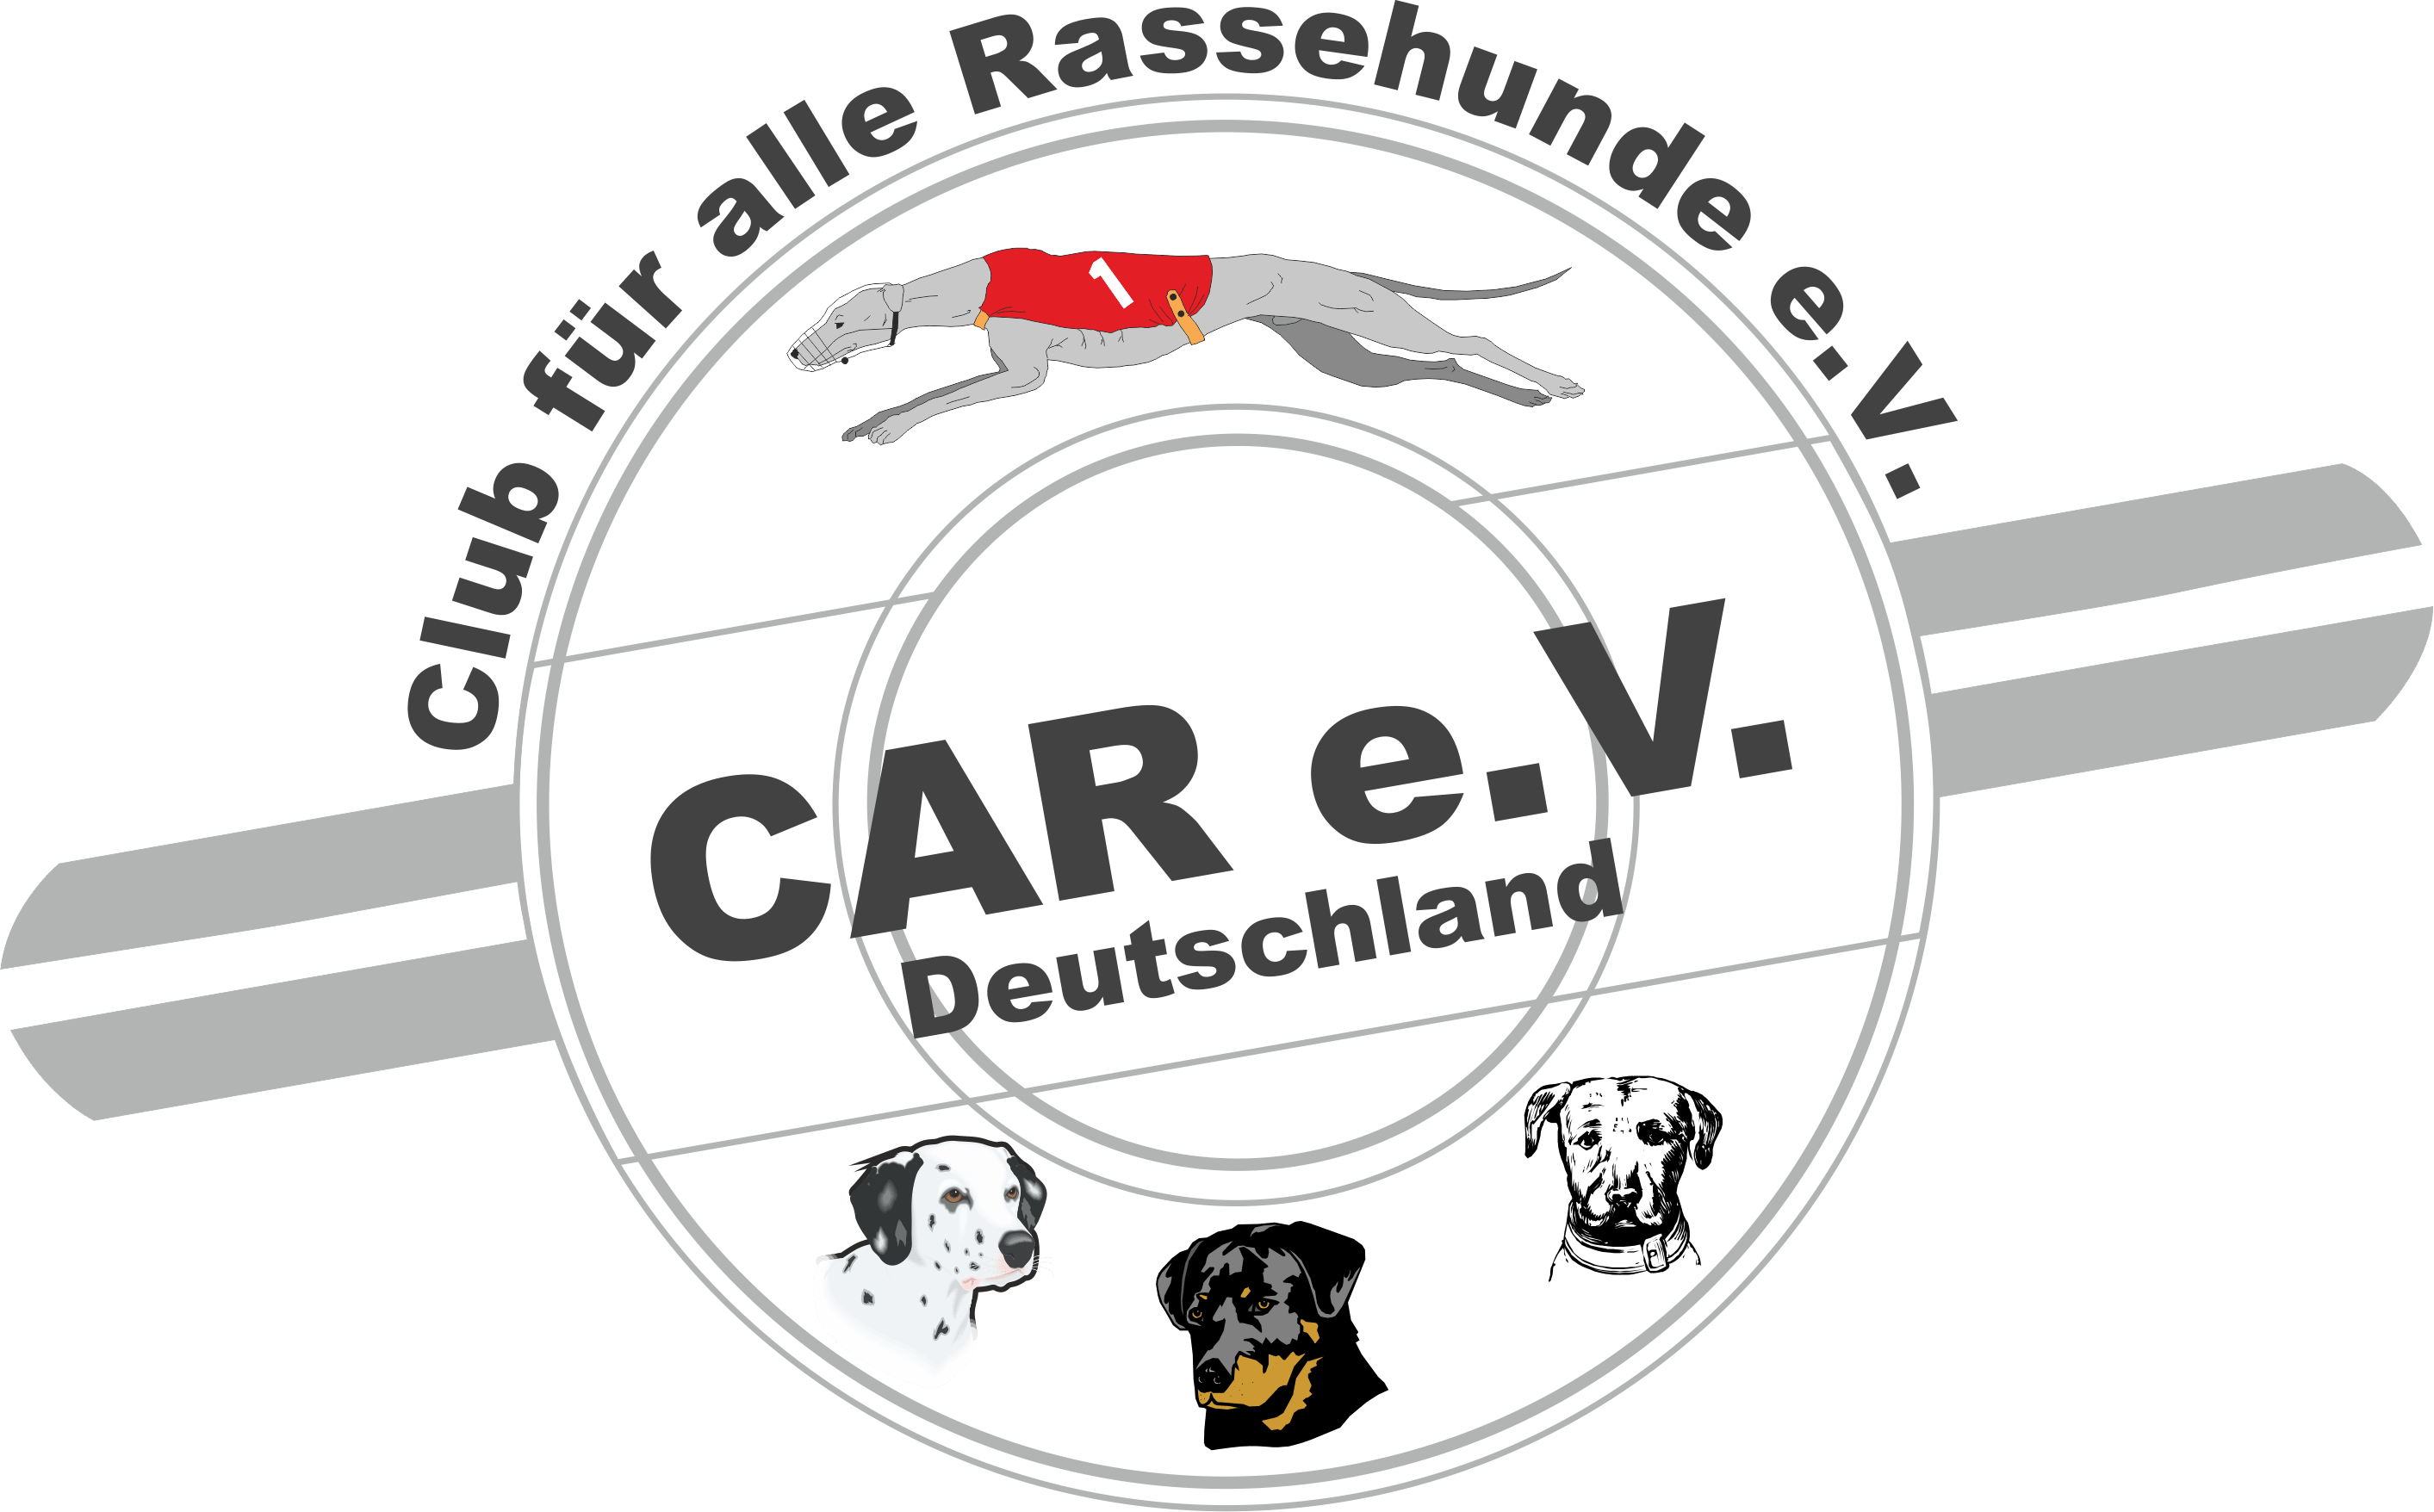 Club Rassehunde